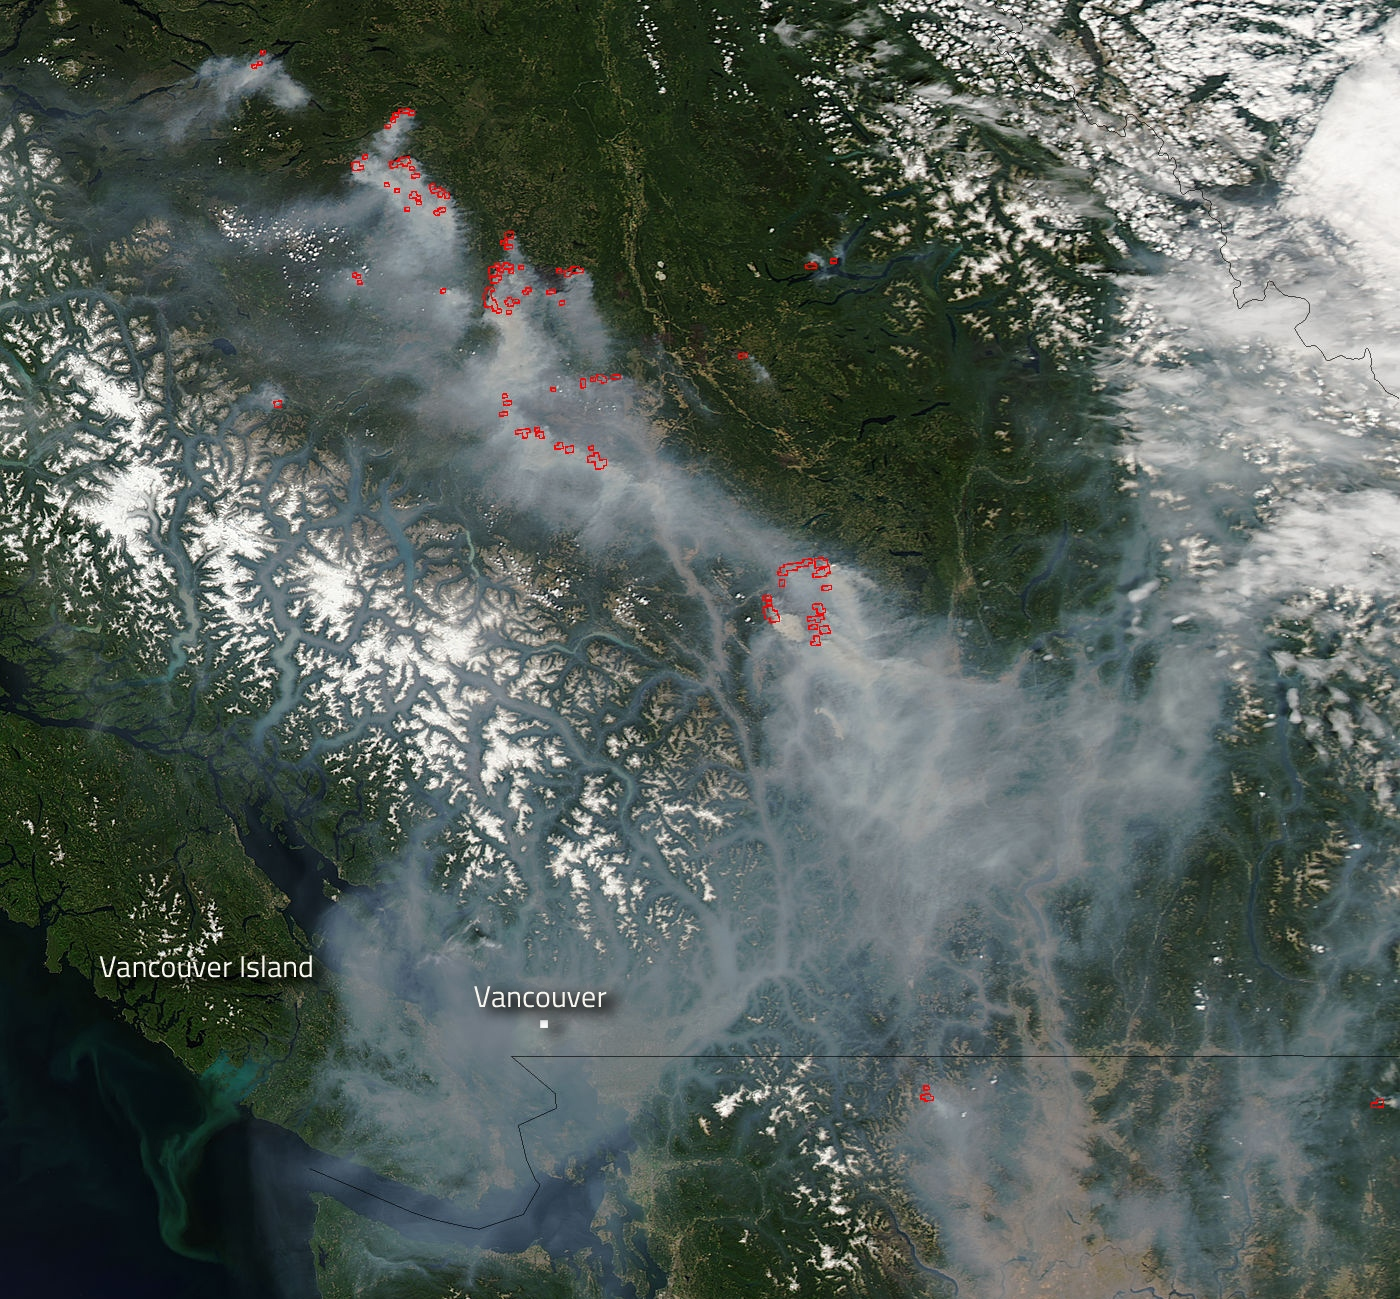 nasa-satellite-image-wildfire-smoke-over-b-c-july-31-2017.jpg